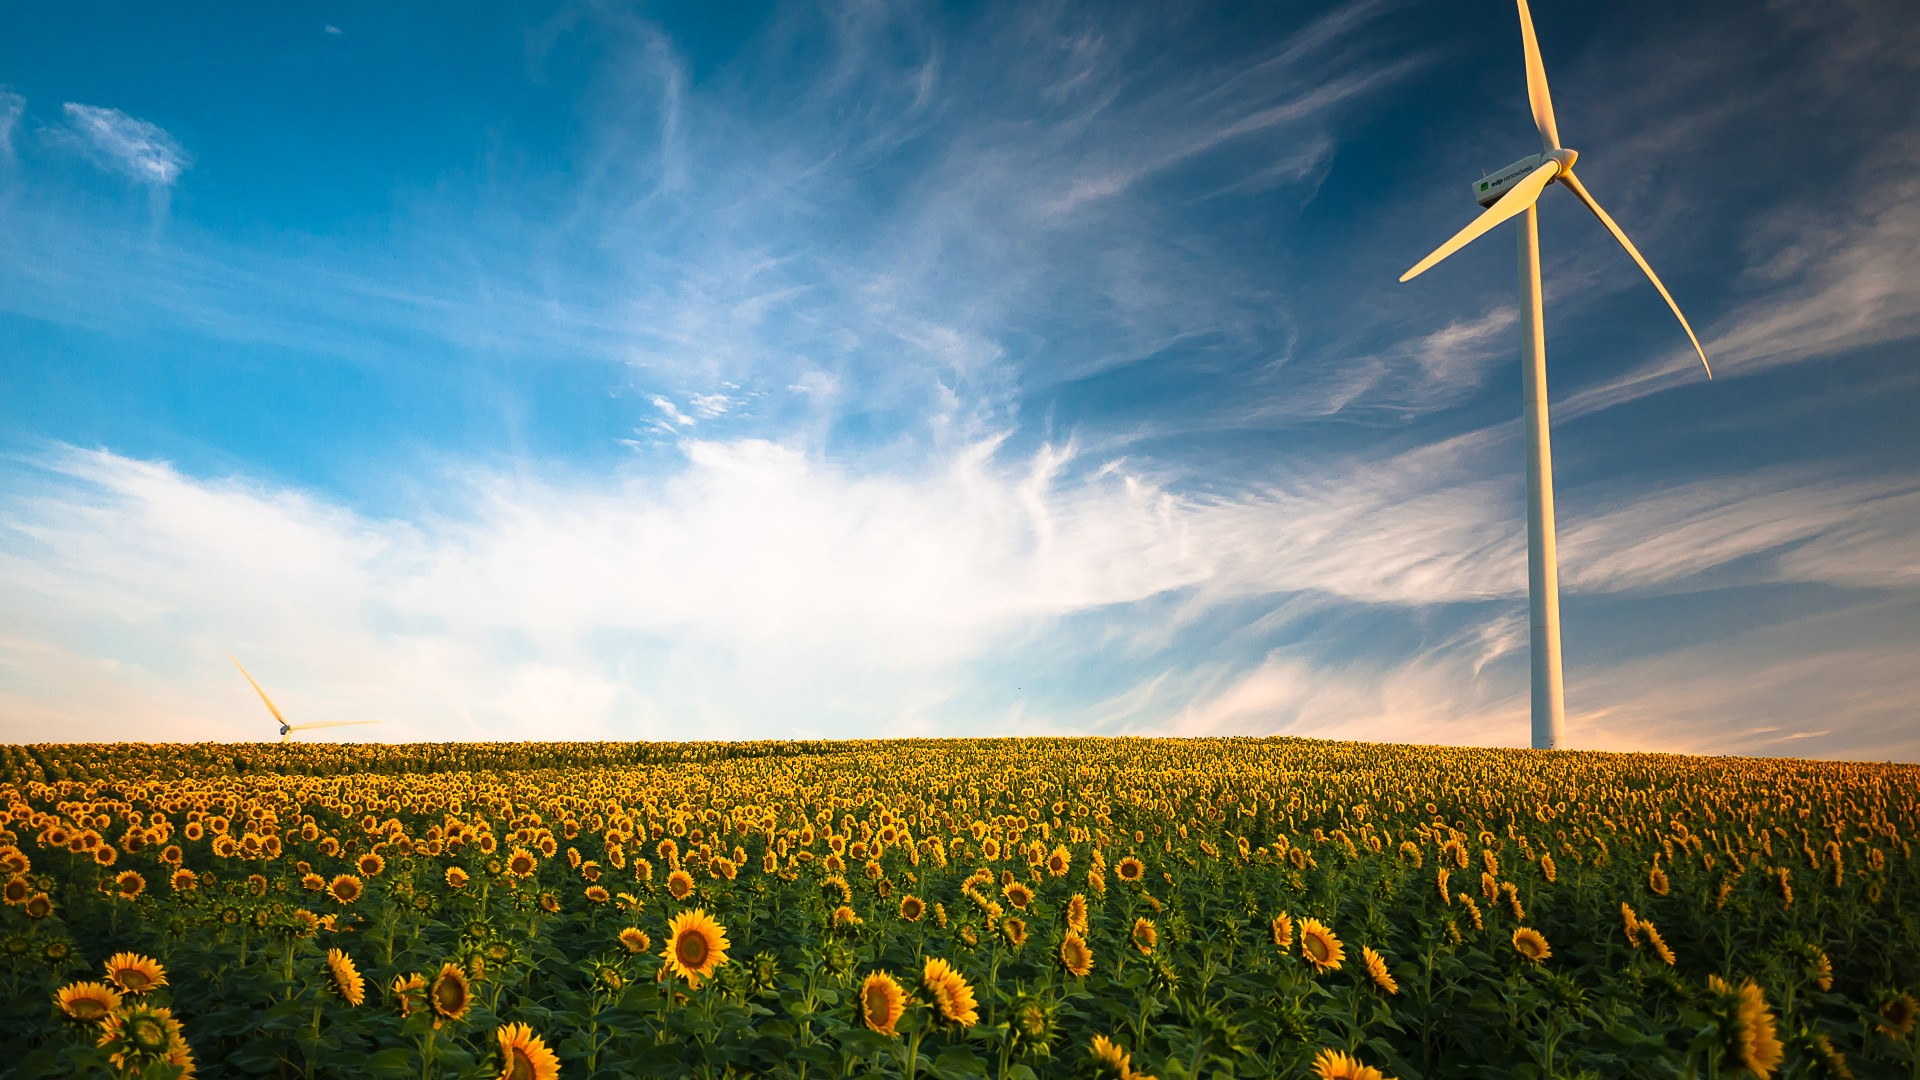 3d Wallpaper For Ipad Wind Turbine Sunflower Field 4k Wallpapers Hd Wallpapers